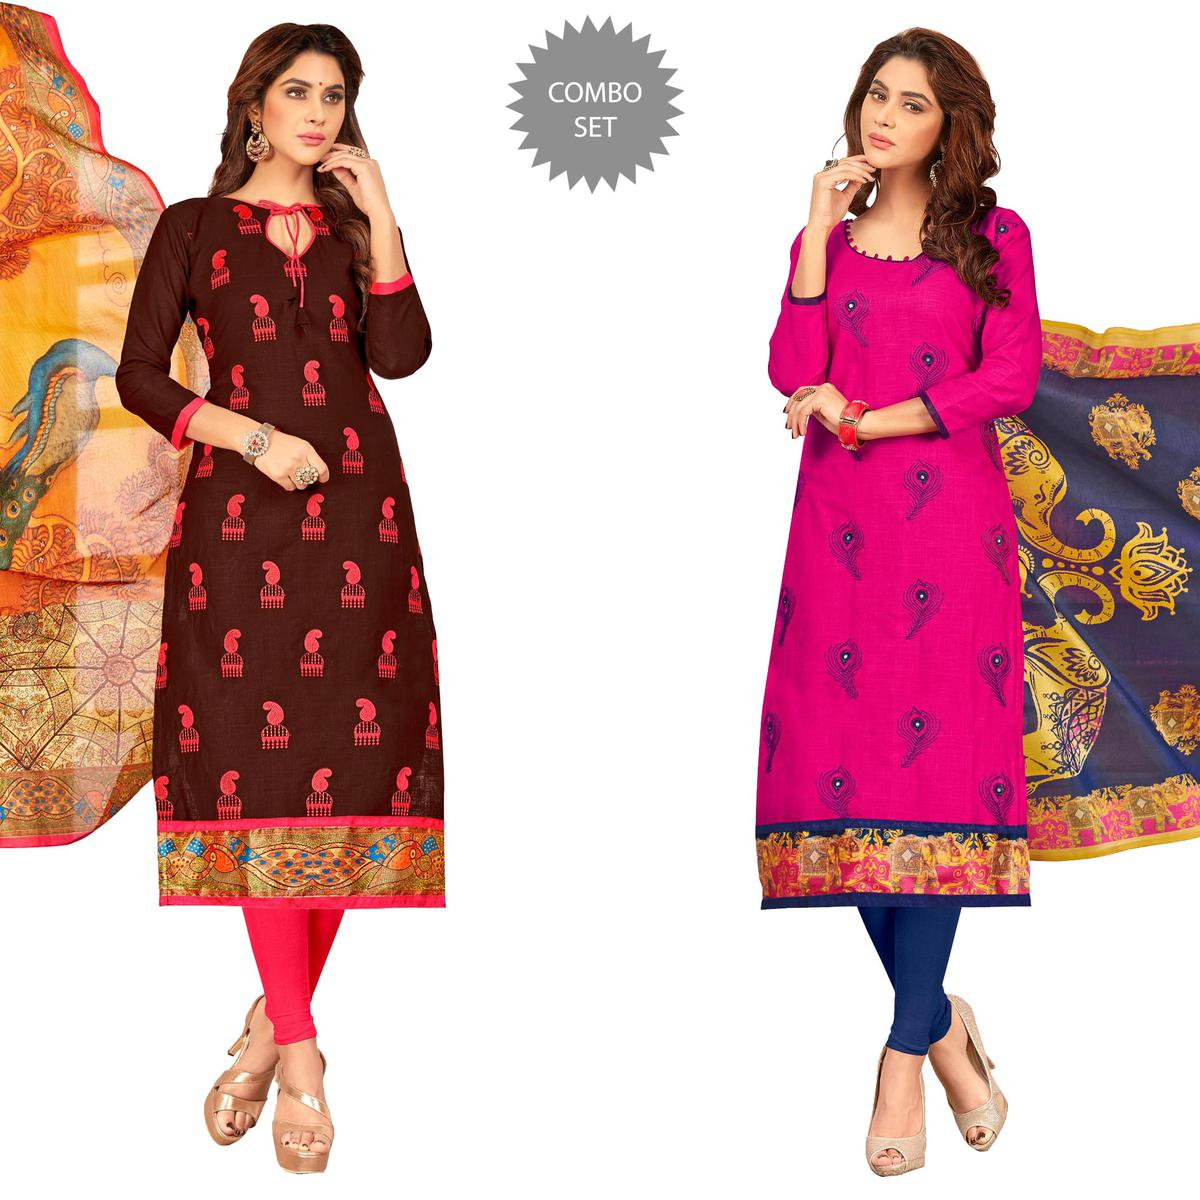 Glowrious Partywear Embroidered Cotton Suit - Pack of 2